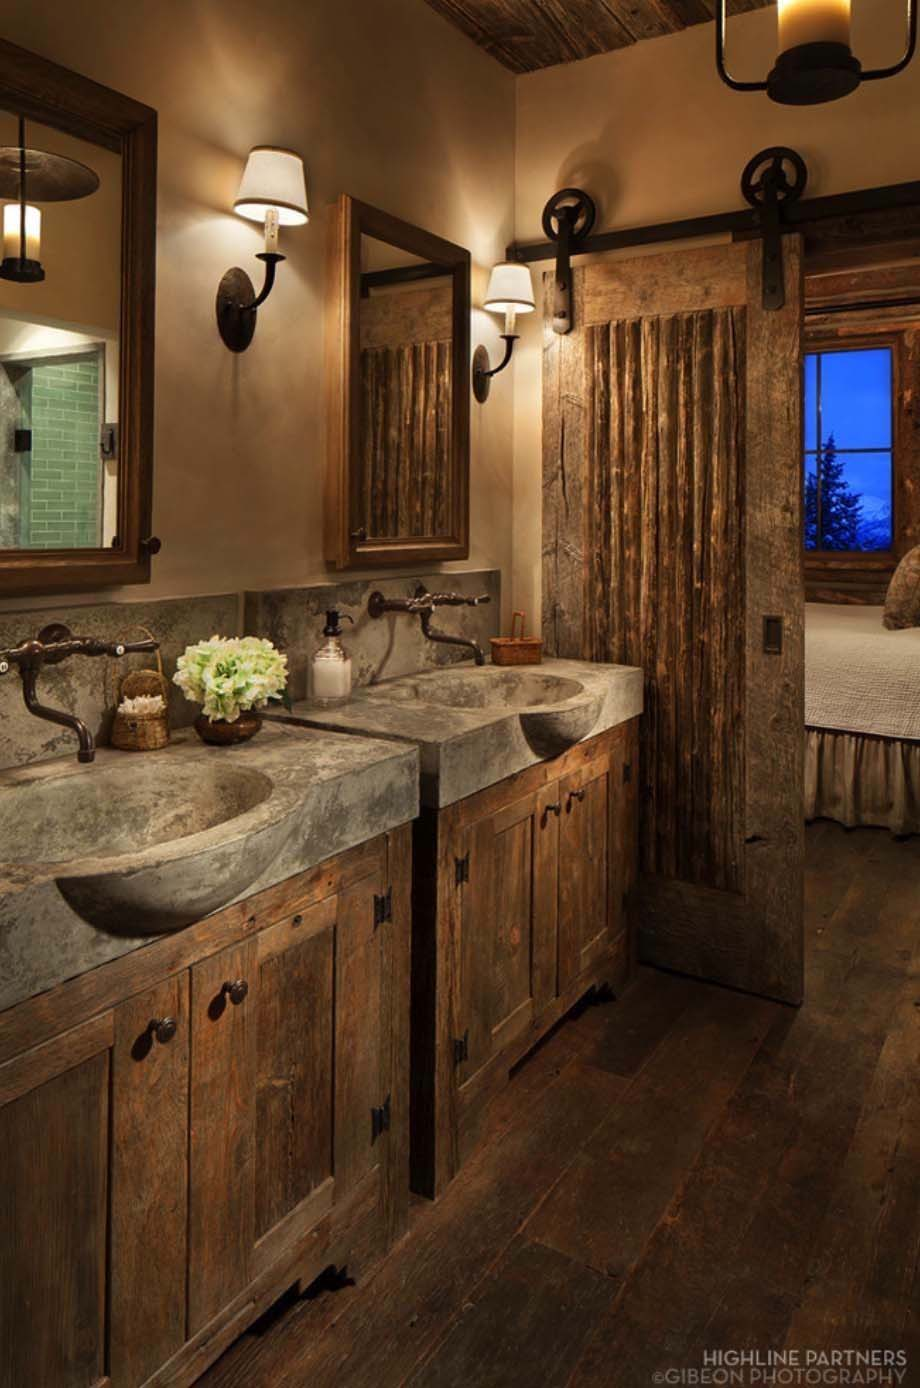 17 inspiring rustic bathroom decor ideas for cozy home Rustic bathroom decor ideas